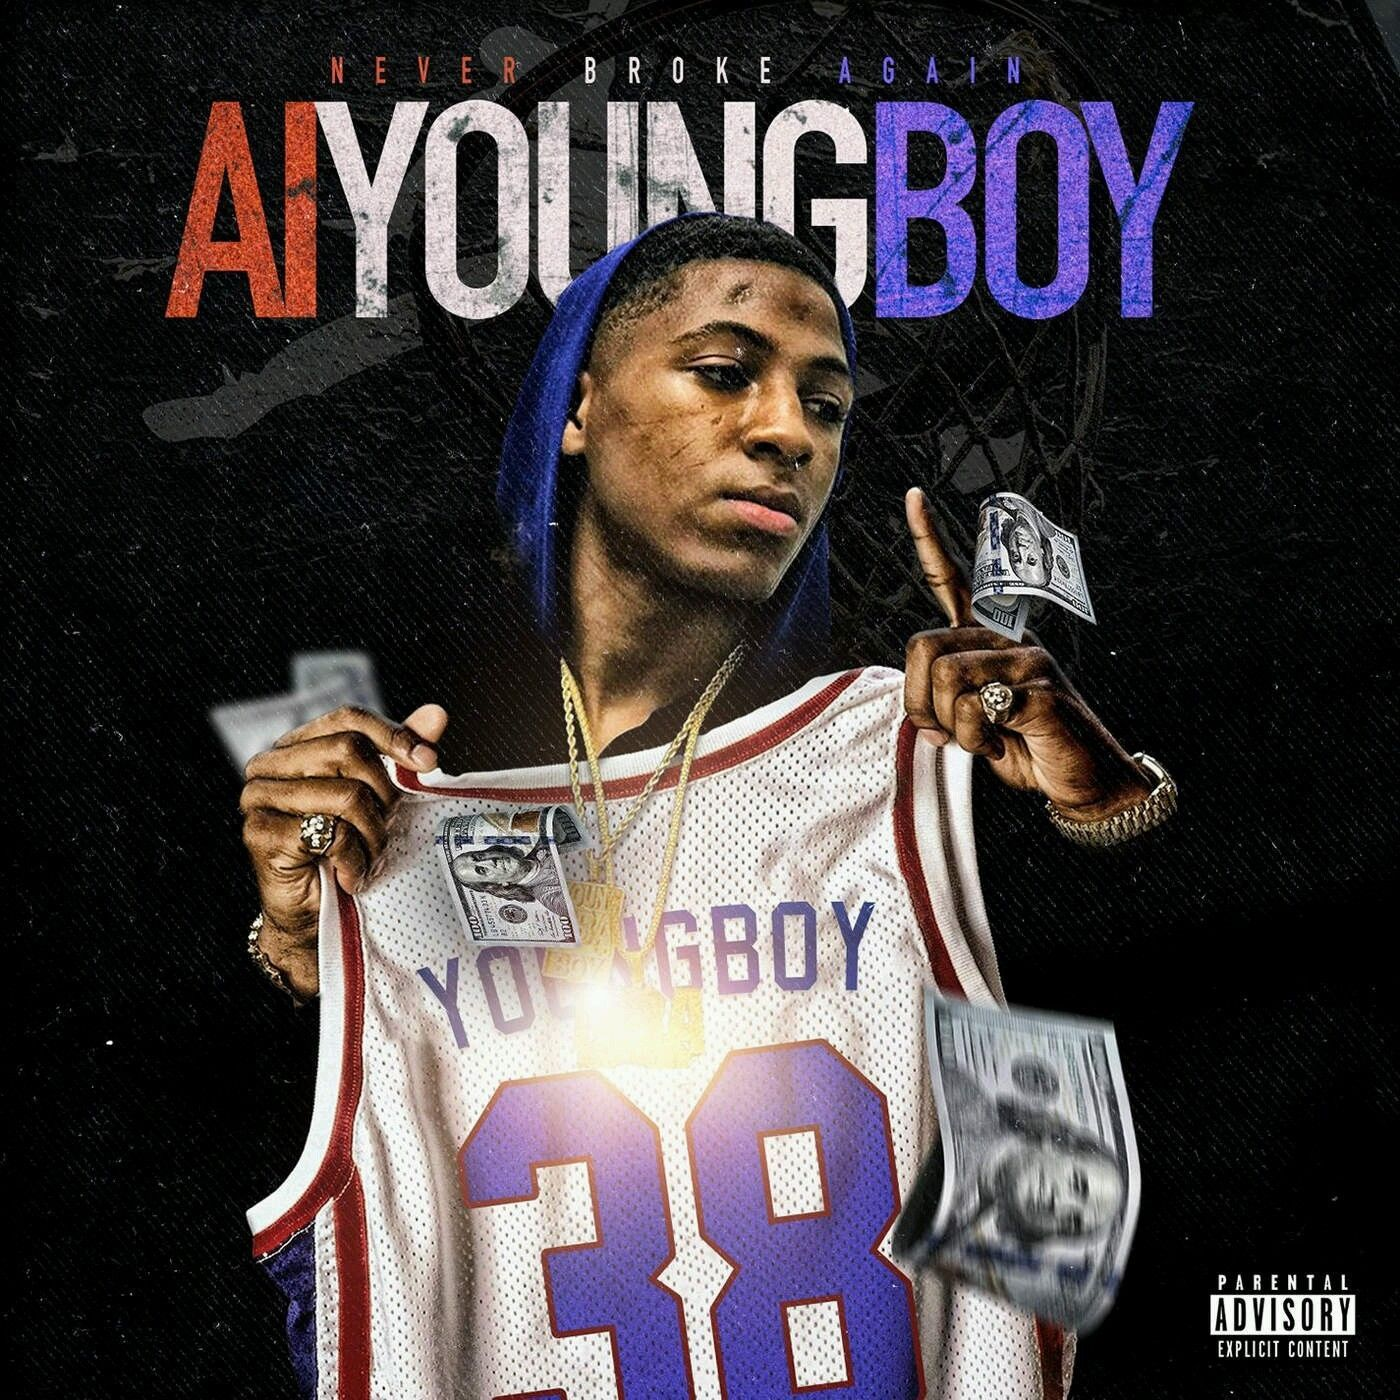 "NBA AI Youngboy Never Broke Again New Album Art Cover Poster 20×20 24×24/"" 32×32/"""